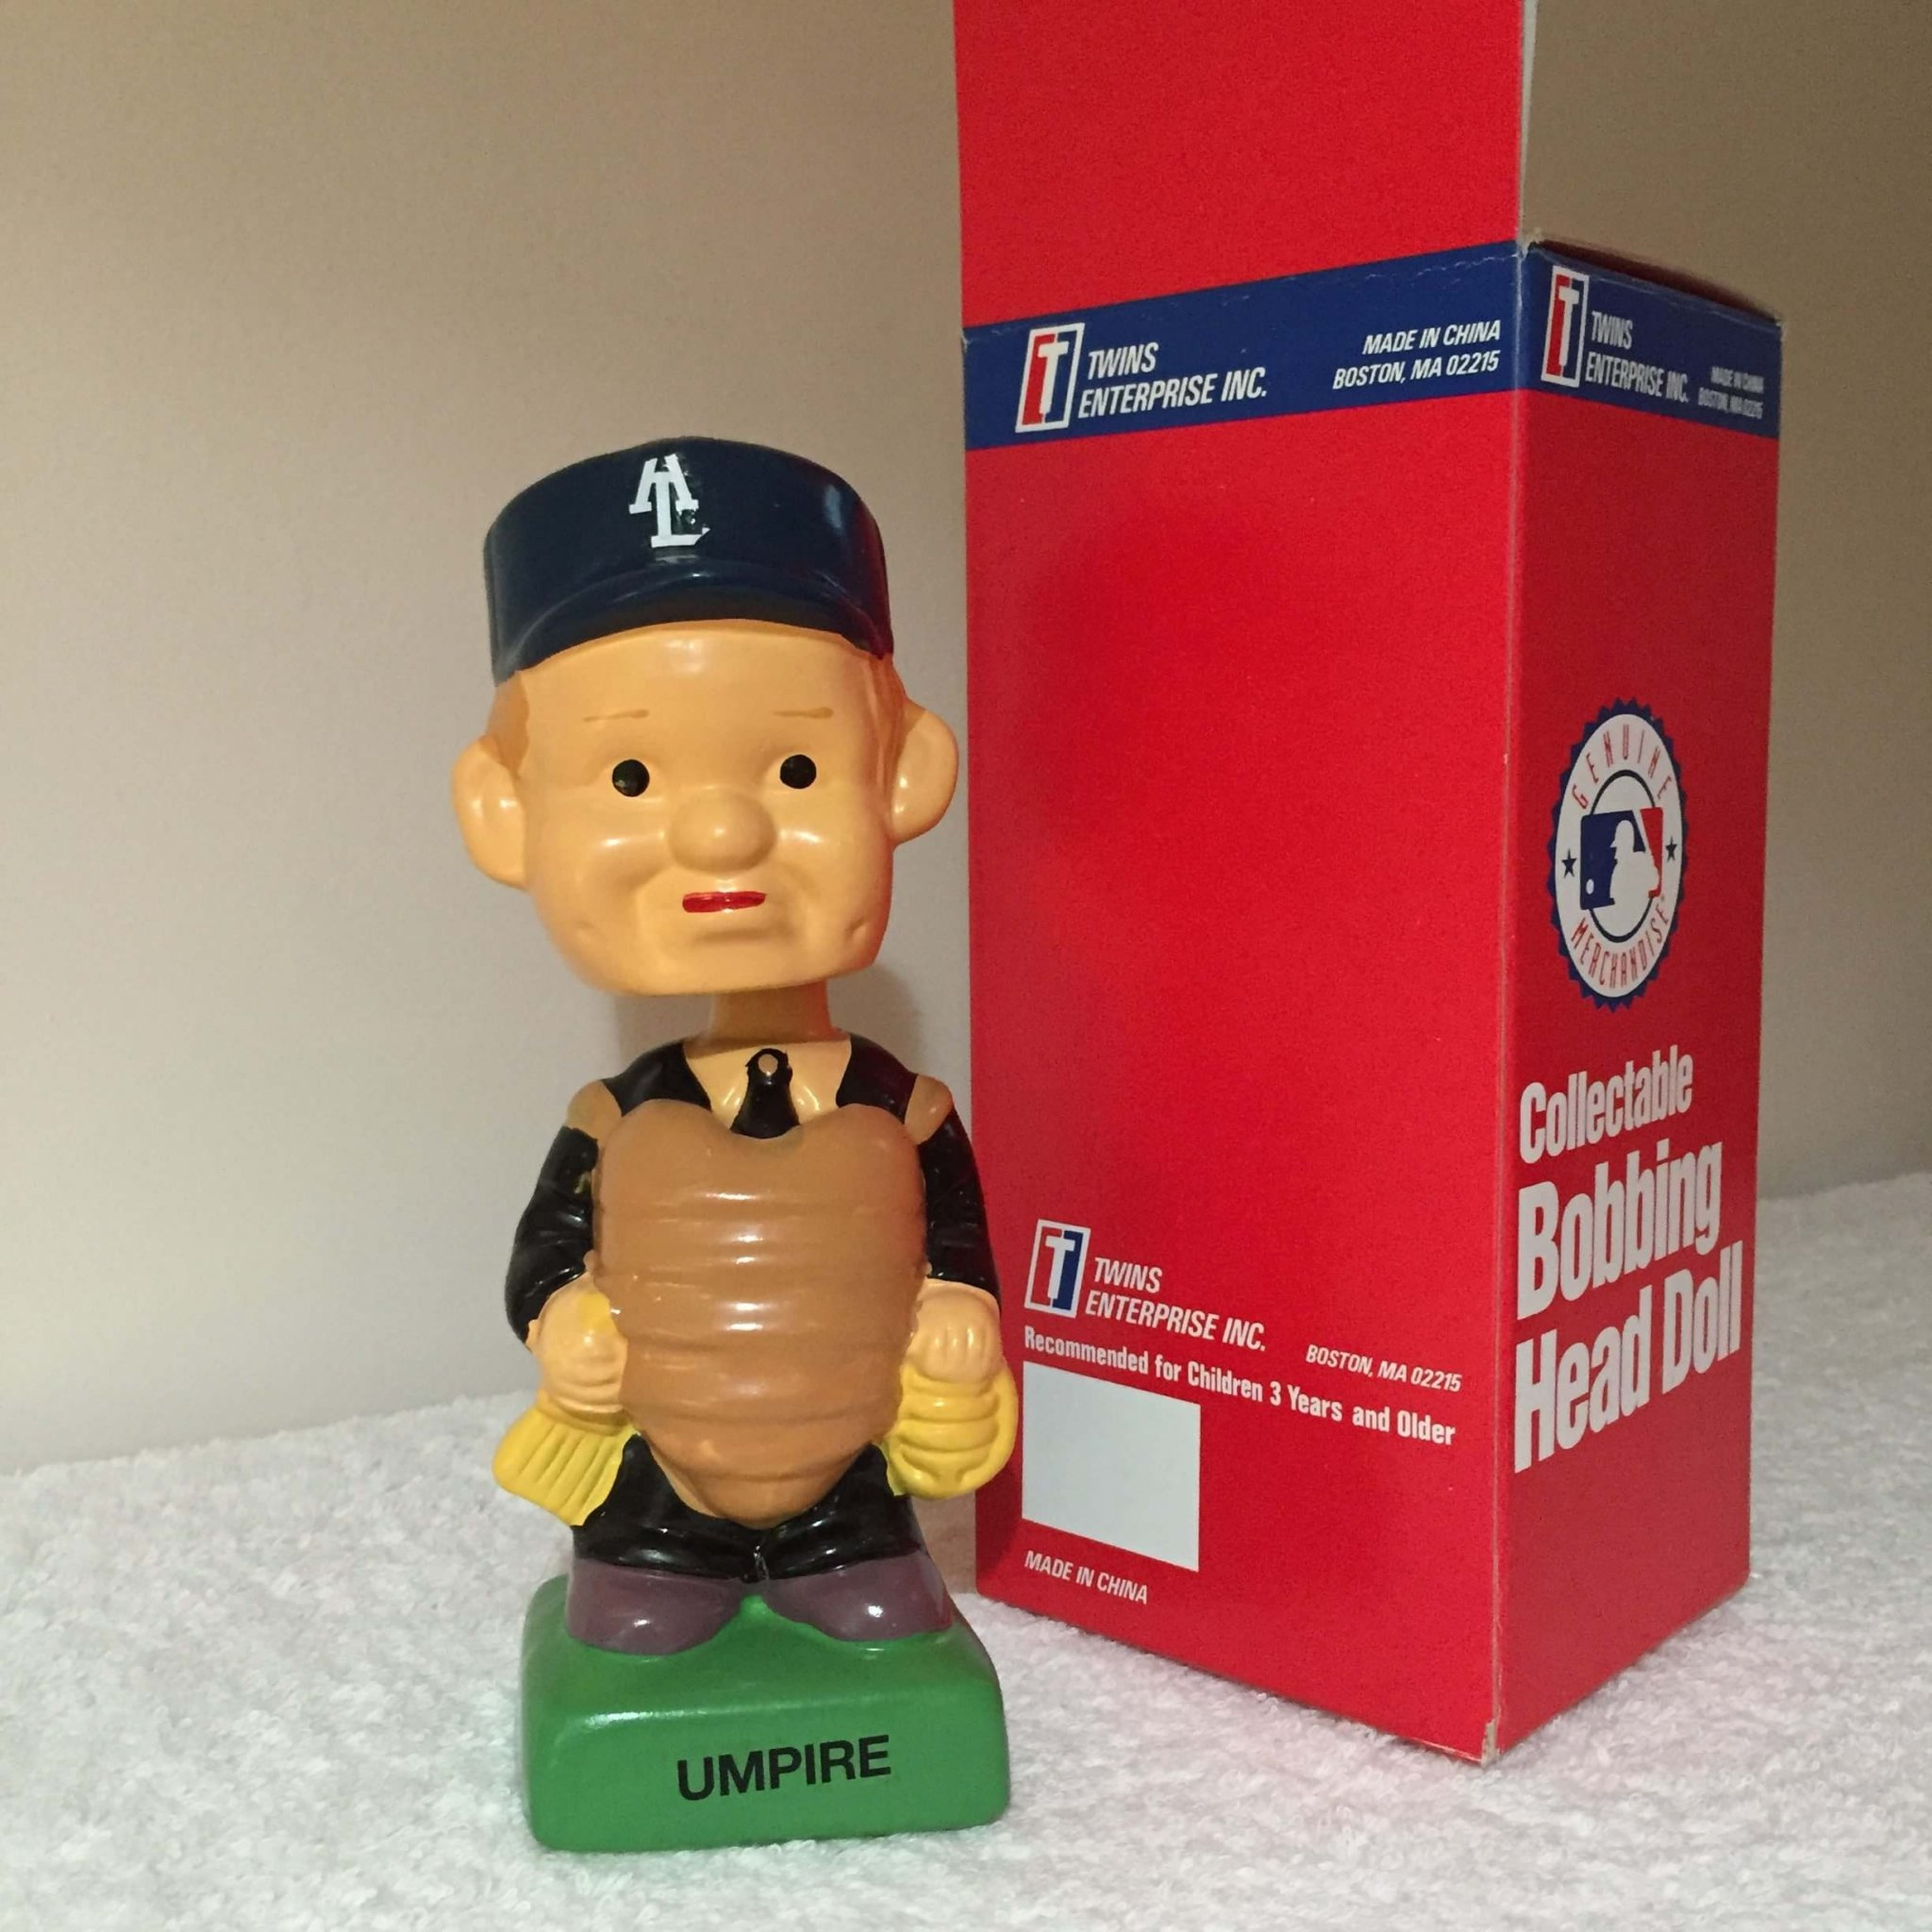 American League Umpire